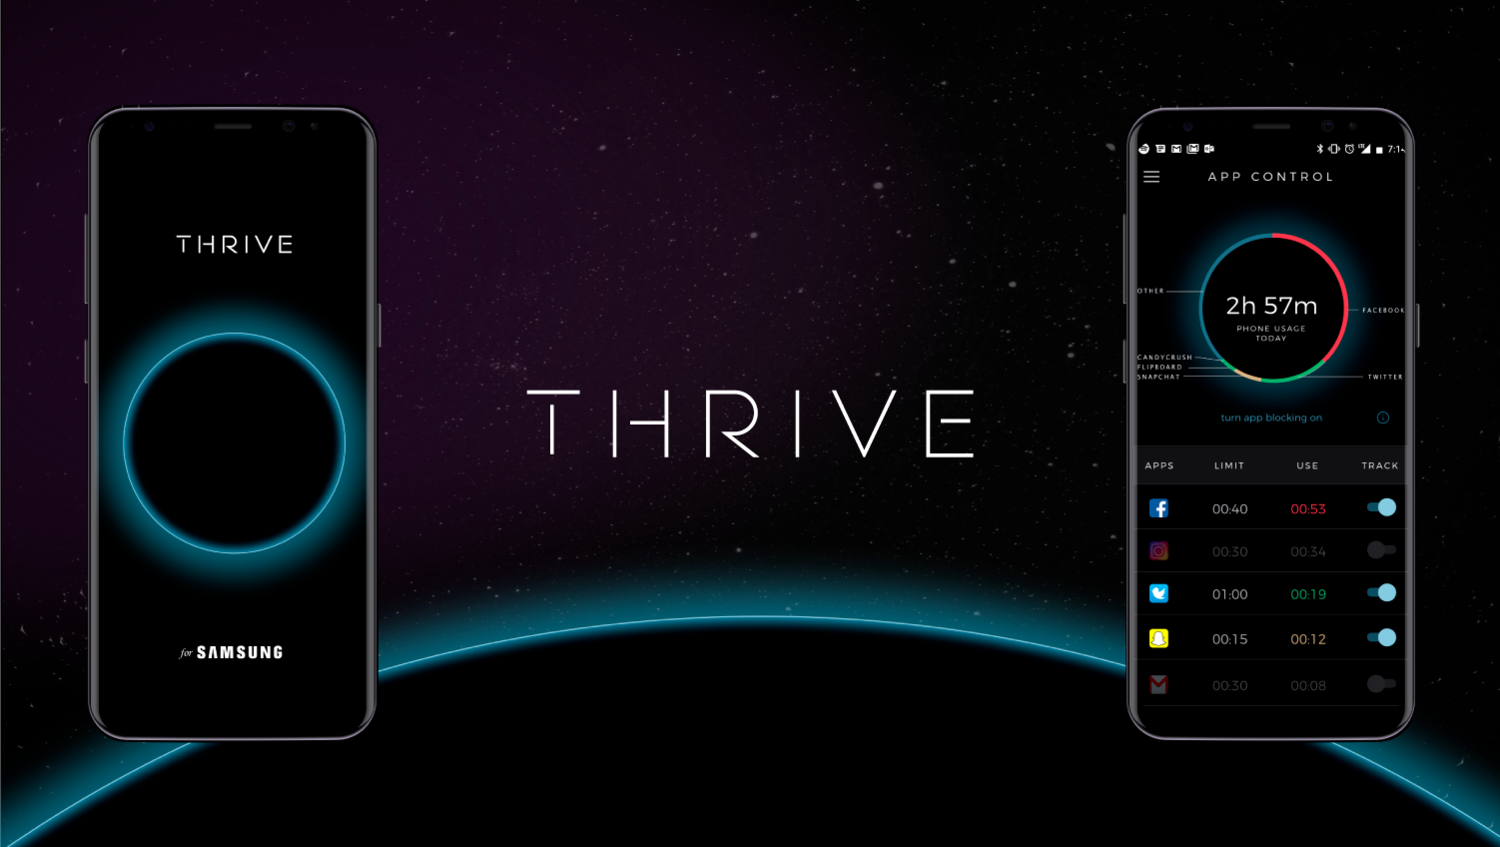 The Thrive App can track how much time you spend on and off your phone